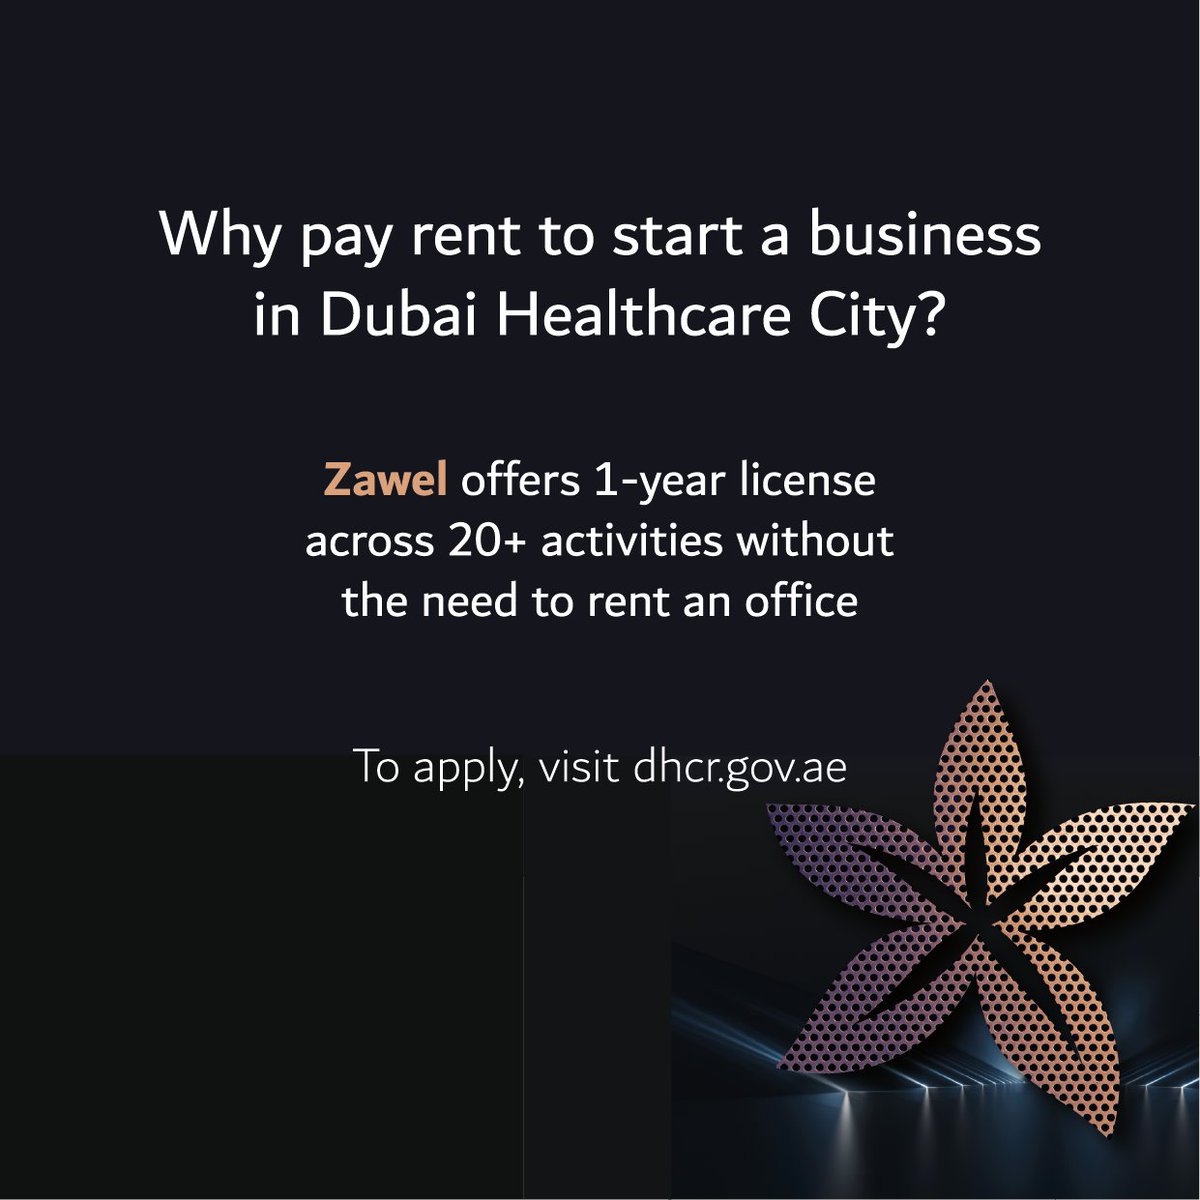 Looking to start a business but don't need any office space just yet? Our new commercial license, Zawel might be just what you're looking for. READ MORE HERE: https://tinyurl.com/txvkhdw    #DHCC #CommunityOfChoice #DHCR #Dubai #MyDubai #DXB #Zawel #CommercialLicense #DHCCPulsepic.twitter.com/zkSnu7ITIi